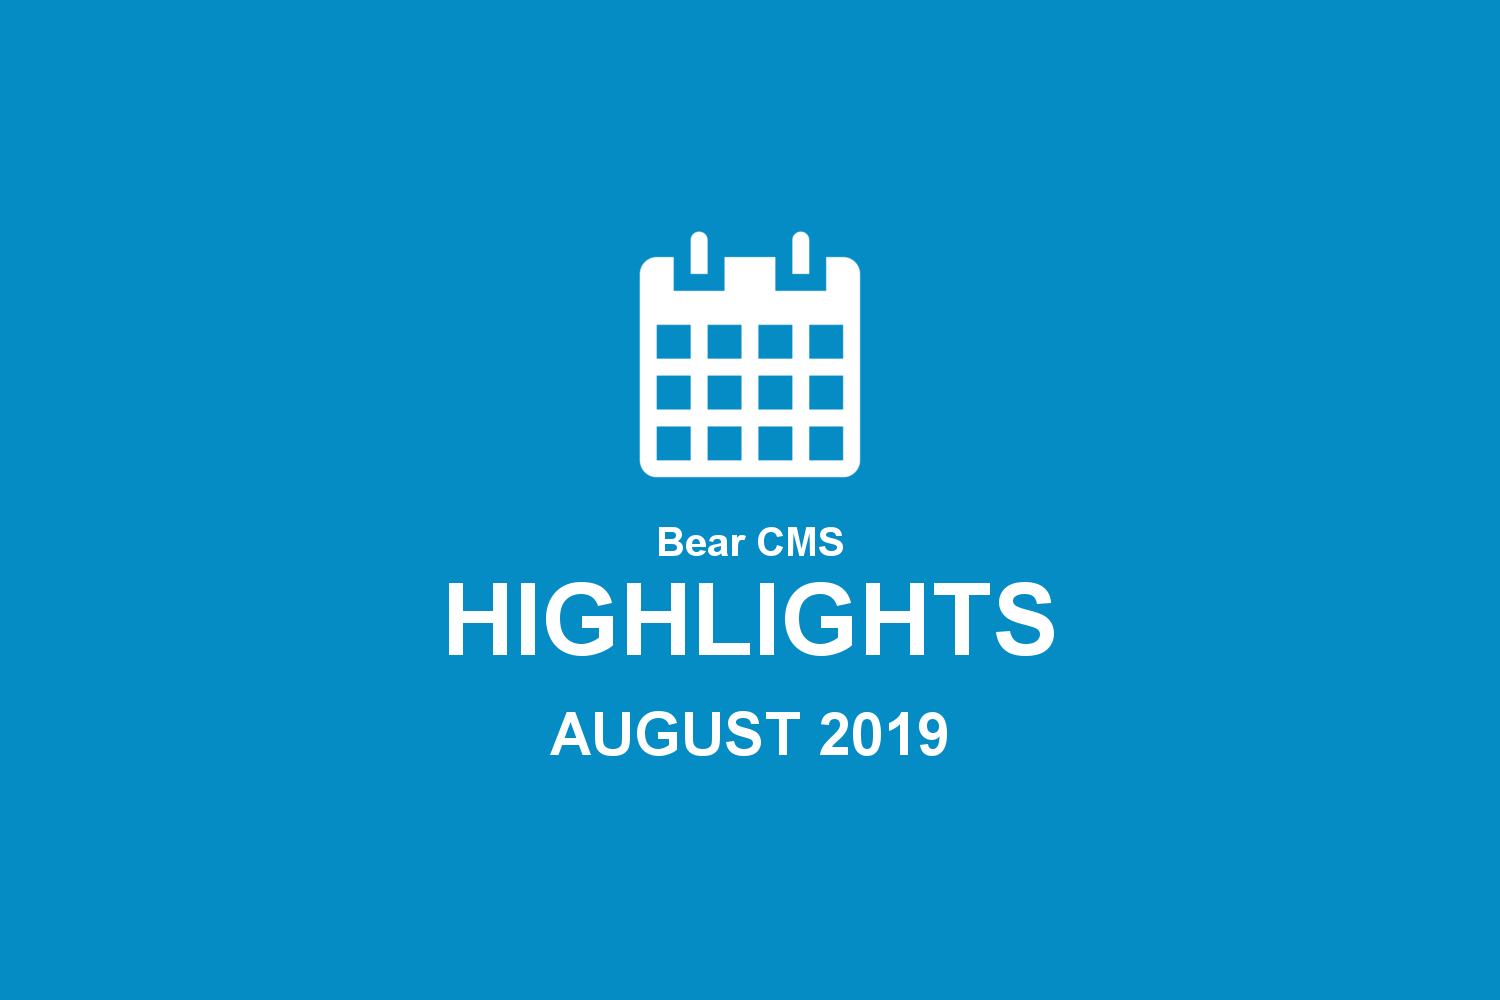 Bear CMS highlights (August 2019)